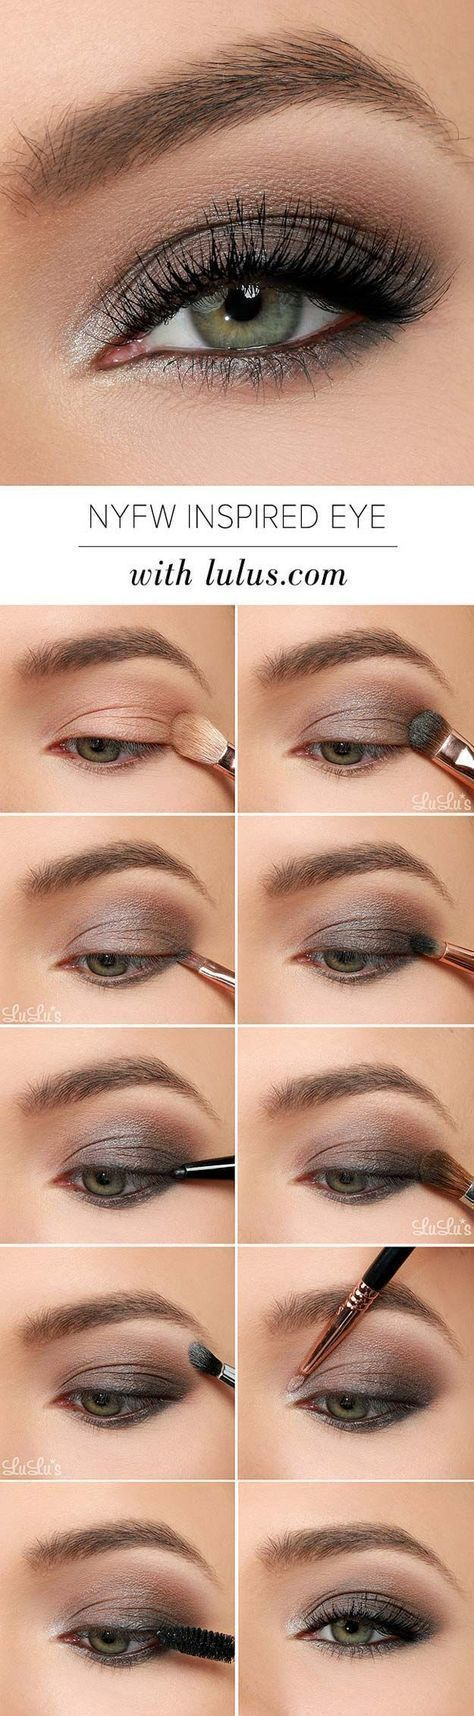 Best Eyeshadow Tutorials - NYFW Inspired Eye Shadow Tutorial - Easy Step by Step How To For Eye Shadow - Cool Makeup Tricks and Eye Makeup Tutorial With Instructions - Quick Ways to Do Smoky Eye, Natural Makeup, Looks for Day and Evening, Brown and Blue Eyes - Cool Ideas for Beginners and Teens http://diyprojectsforteens.com/best-eyeshadow-tutorials #makeuptricks #eyemakeup #blueeyemakeup #makeuplooksforbrowneyes #naturalmakeup #naturaleyemakeup